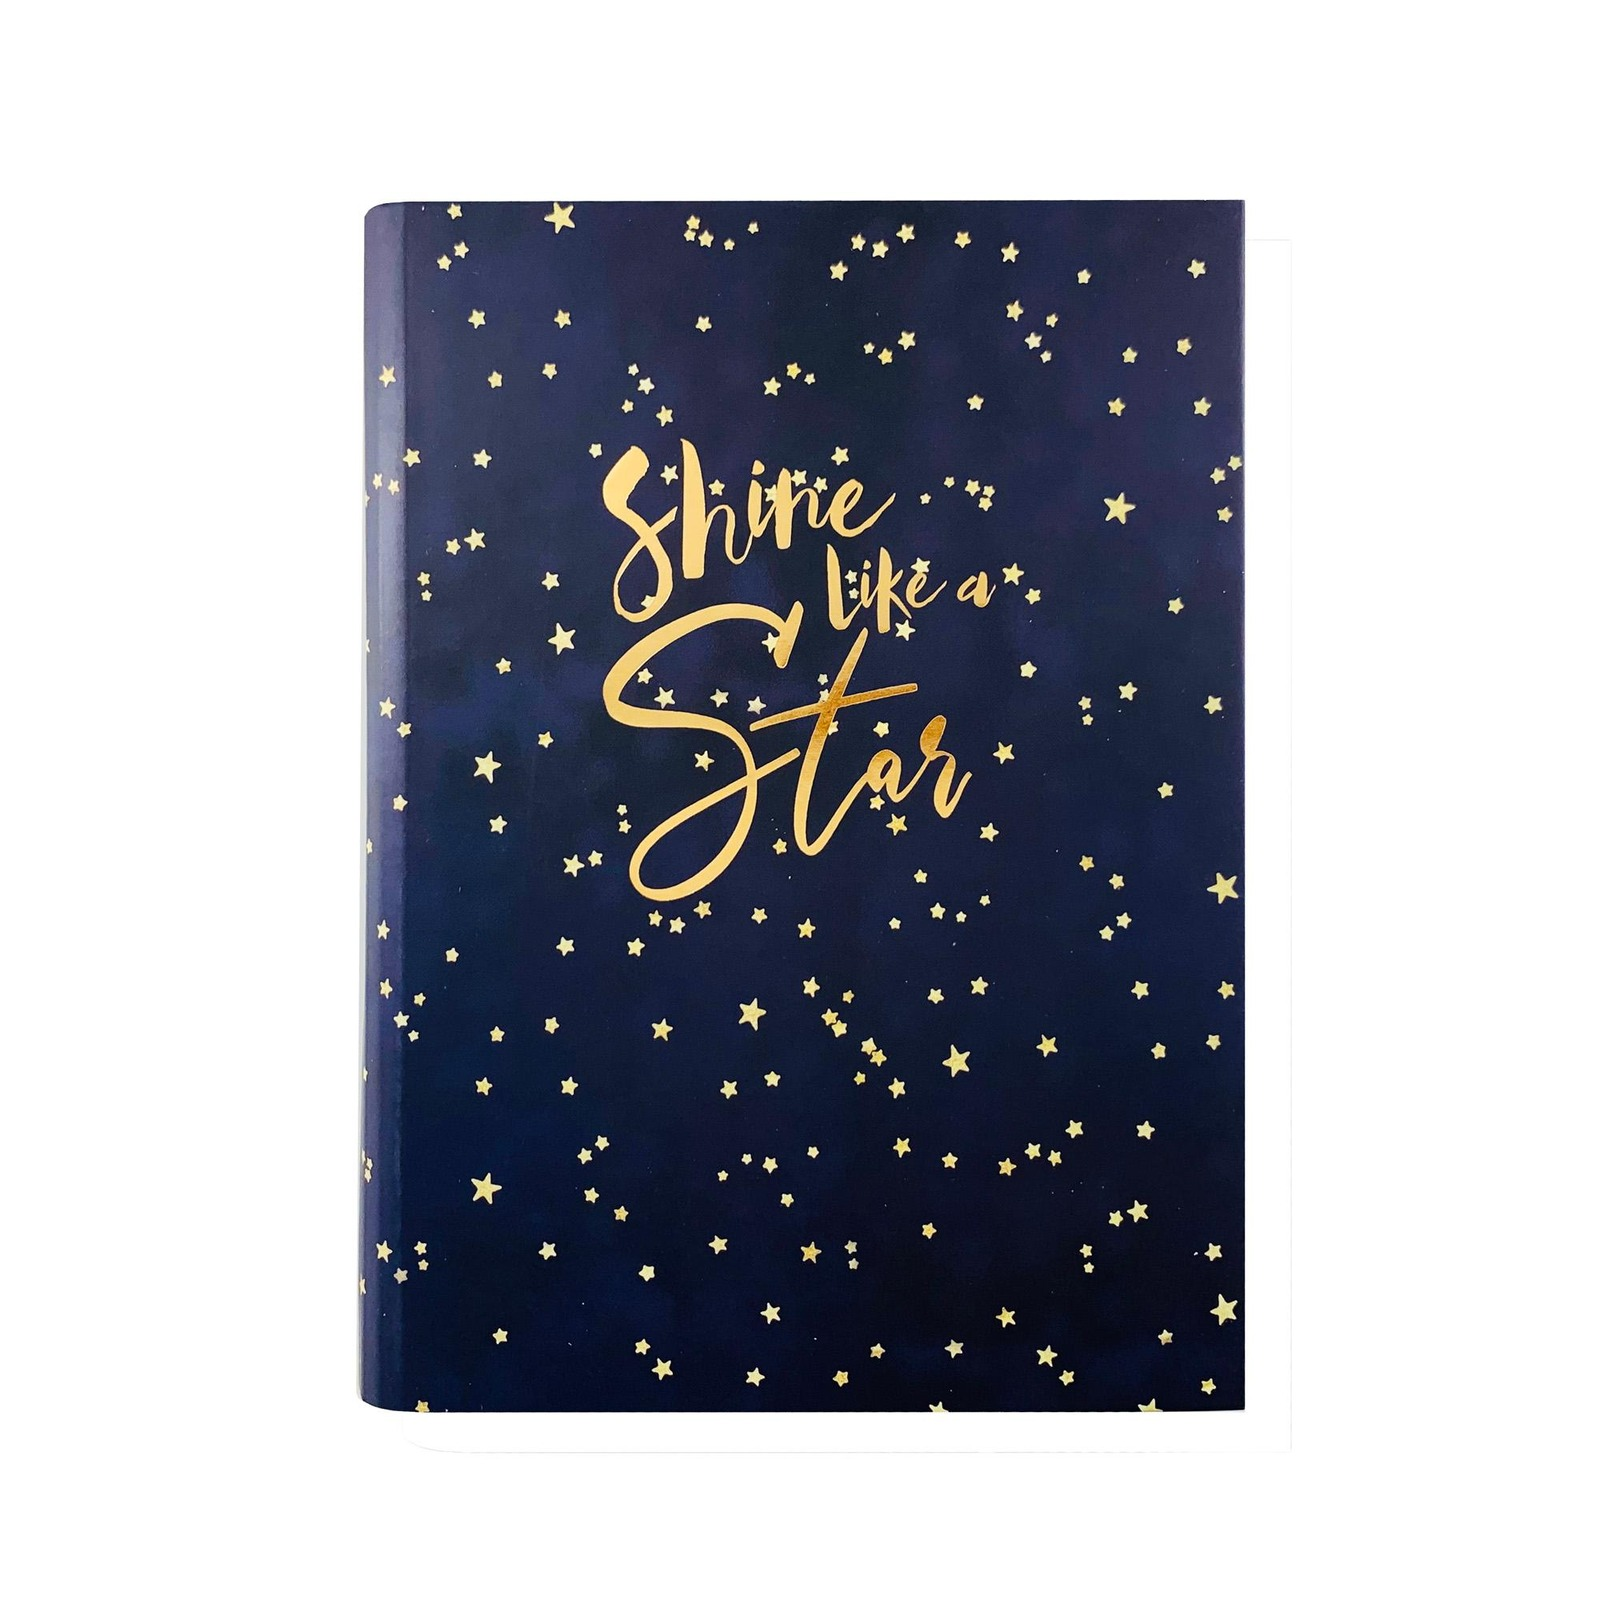 The Paper Stone Journal - Shine like a star